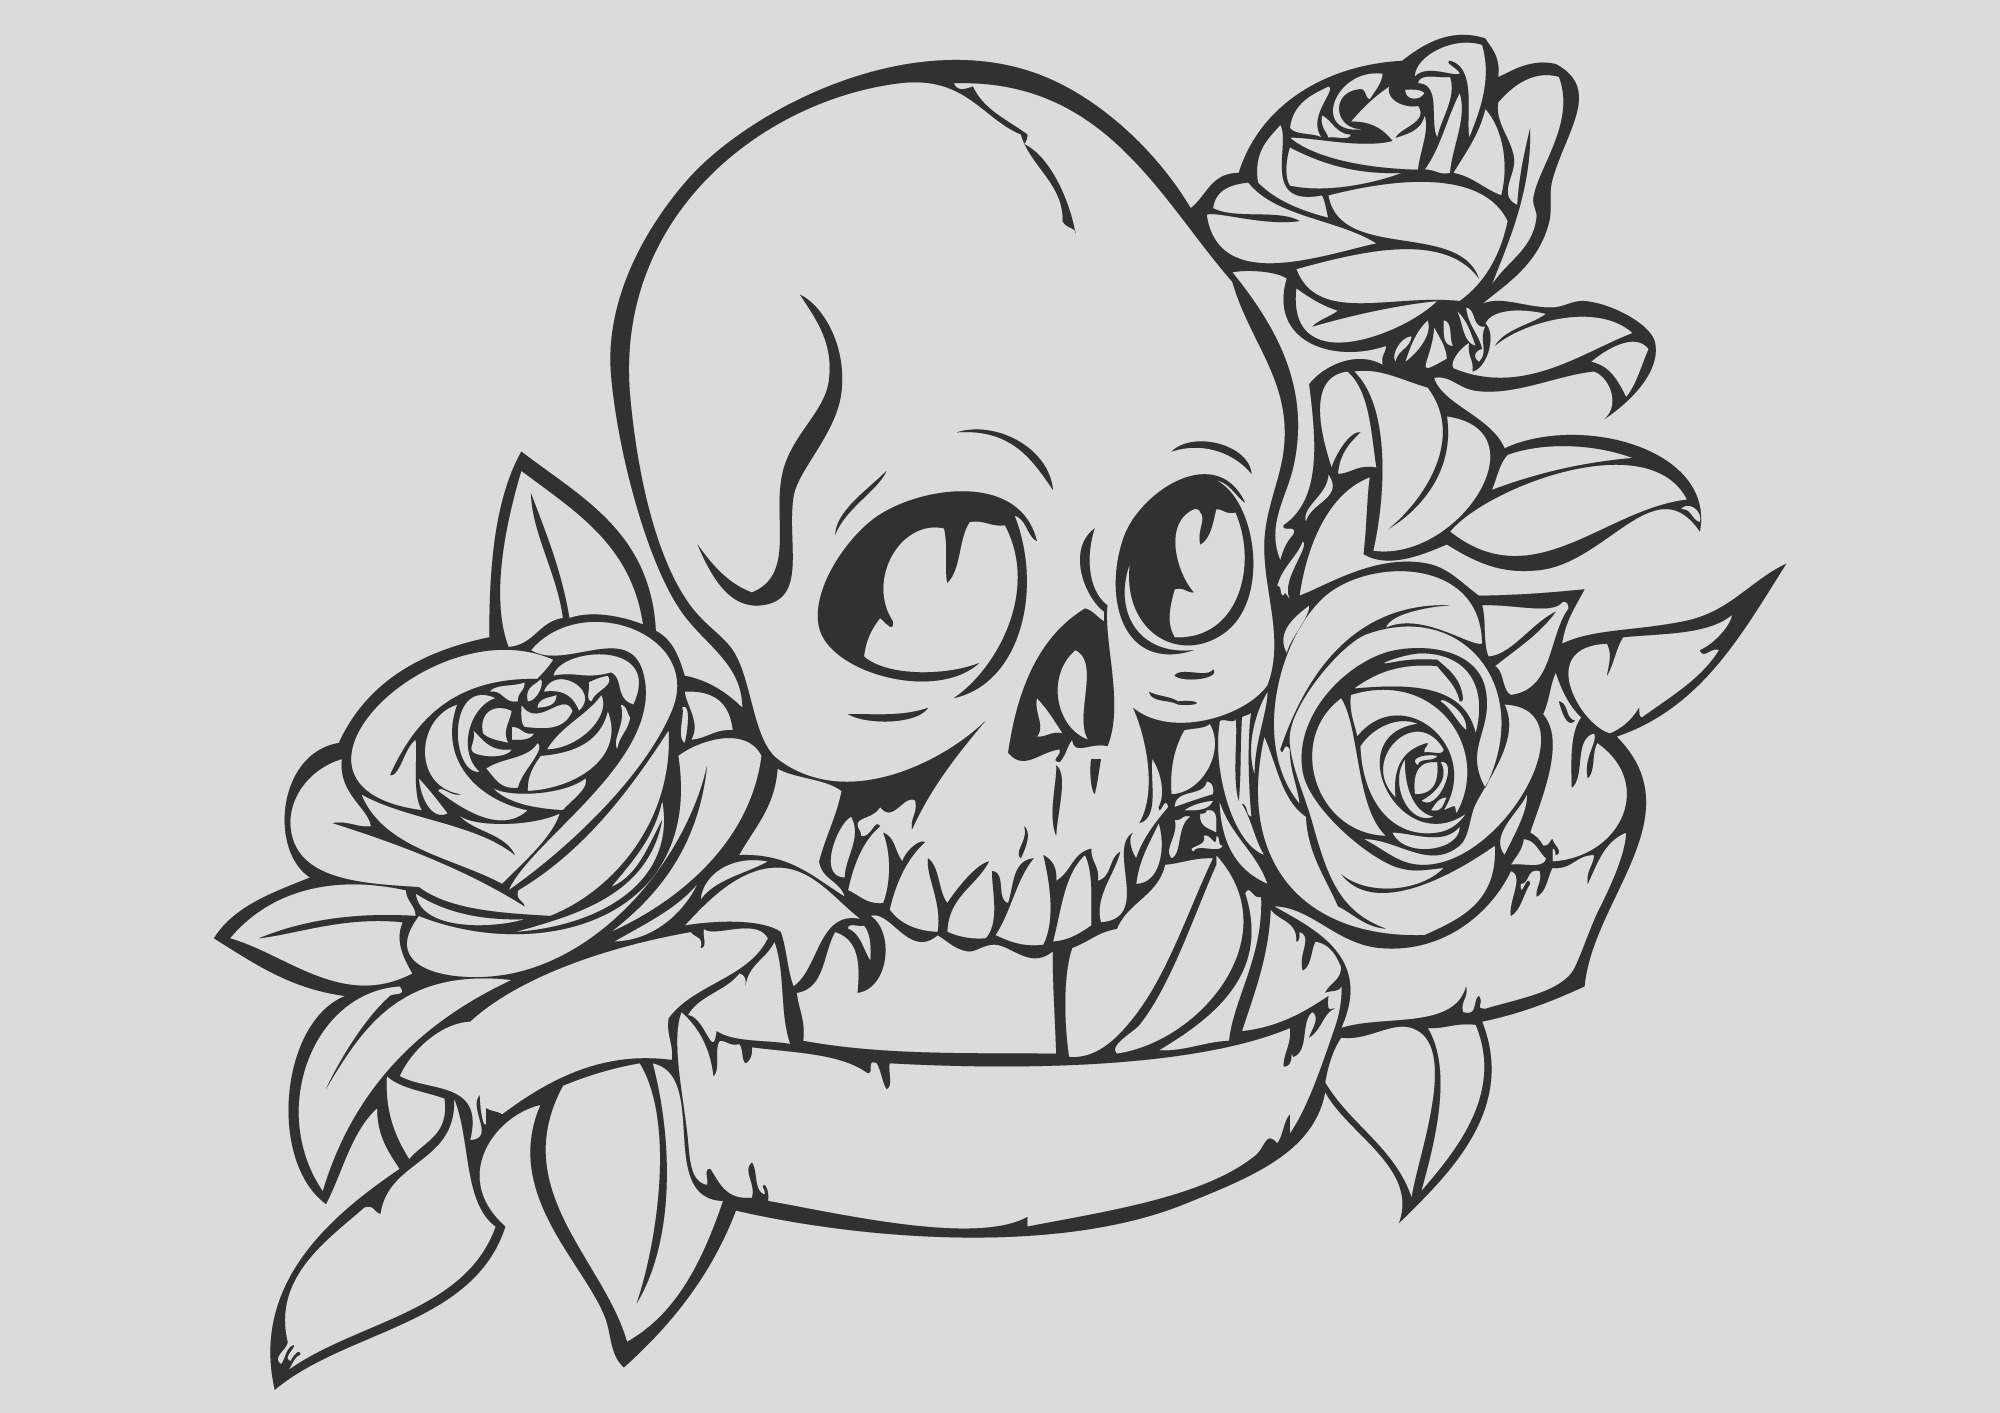 skull and rose drawing easy